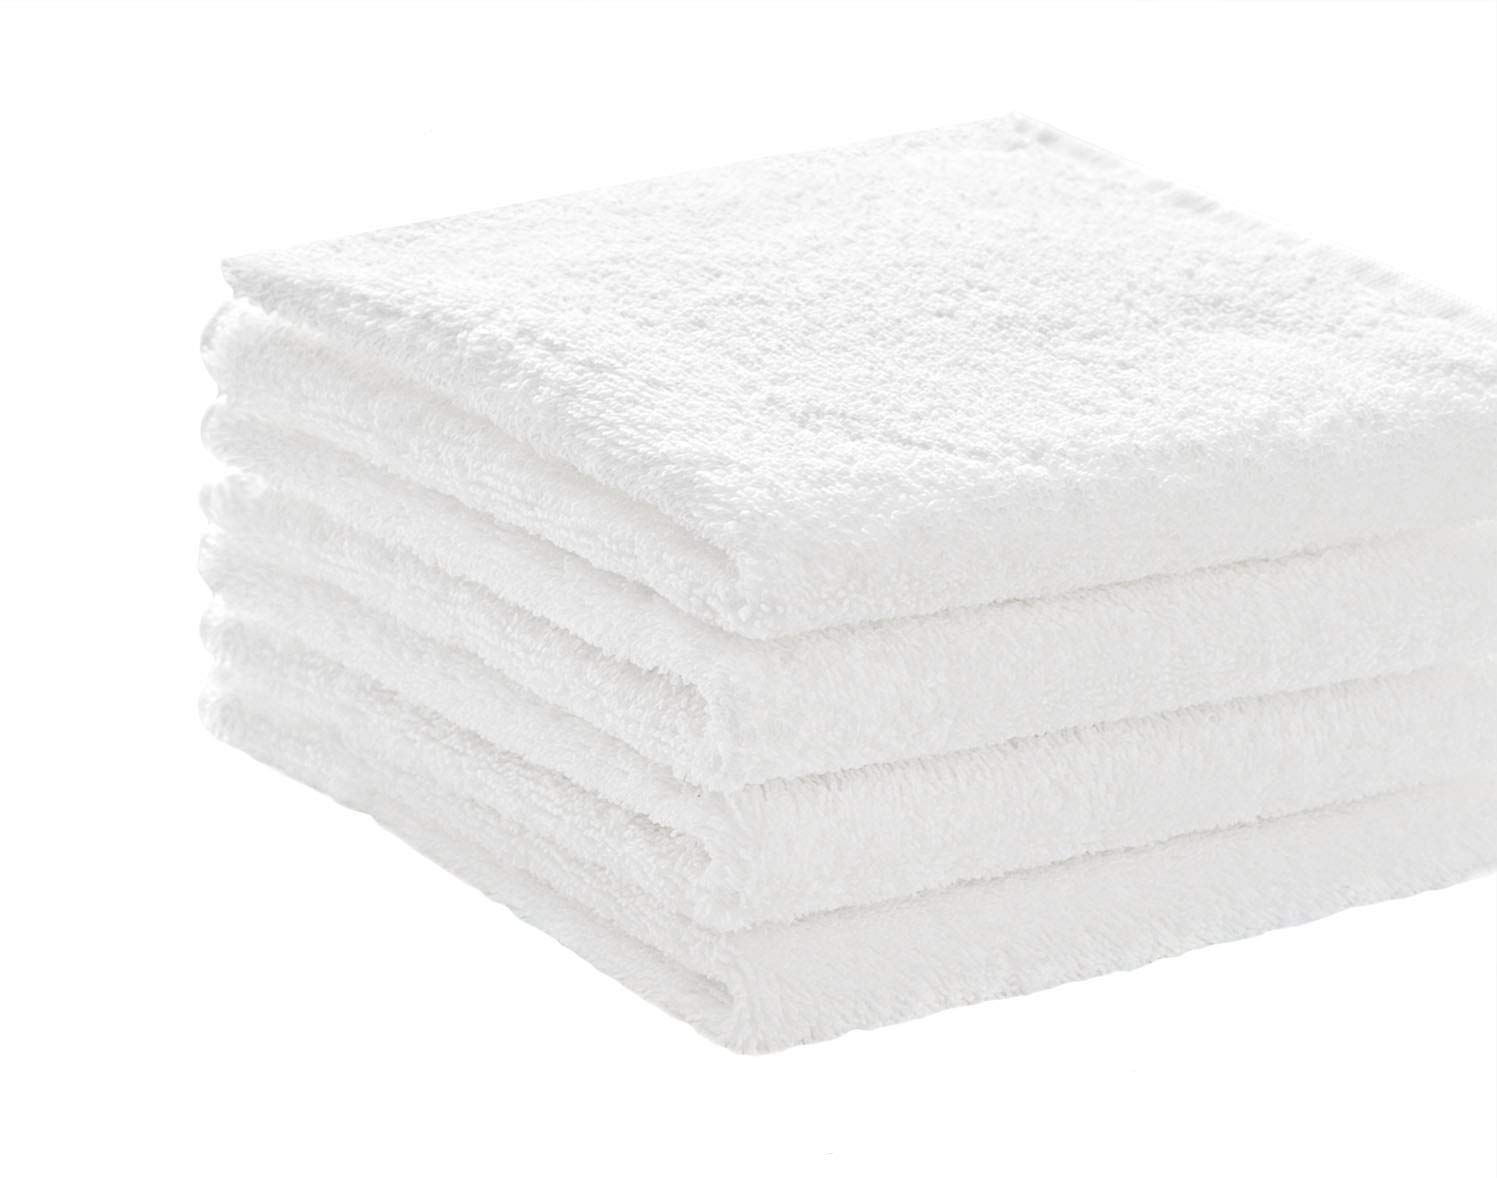 Pacific Linens Soft Absorbent Ringspun Cotton 19.5-Inch-by-31-Inch Hand Towel, White (Pack of 4)